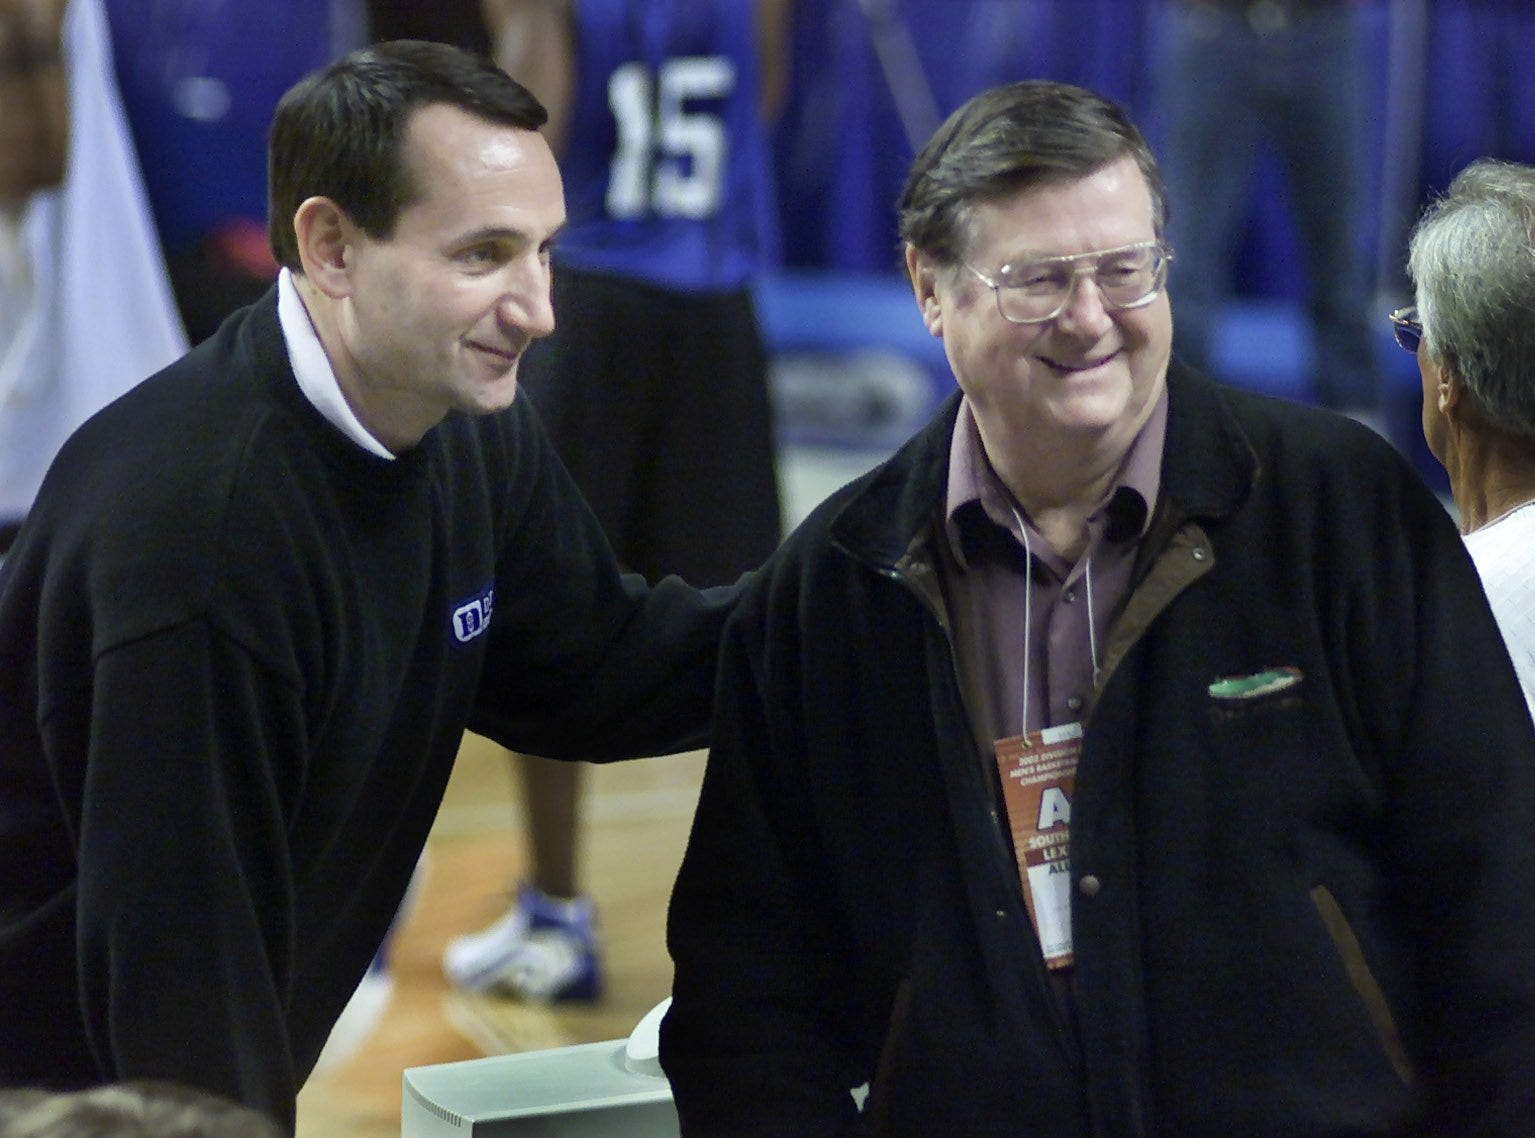 Two days before UK rivals Duke and Indiana meet in Rupp Arena, Blue Devils coach Mike Krzyzewski, left, schmoozed with former UK coach Joe B. Hall.